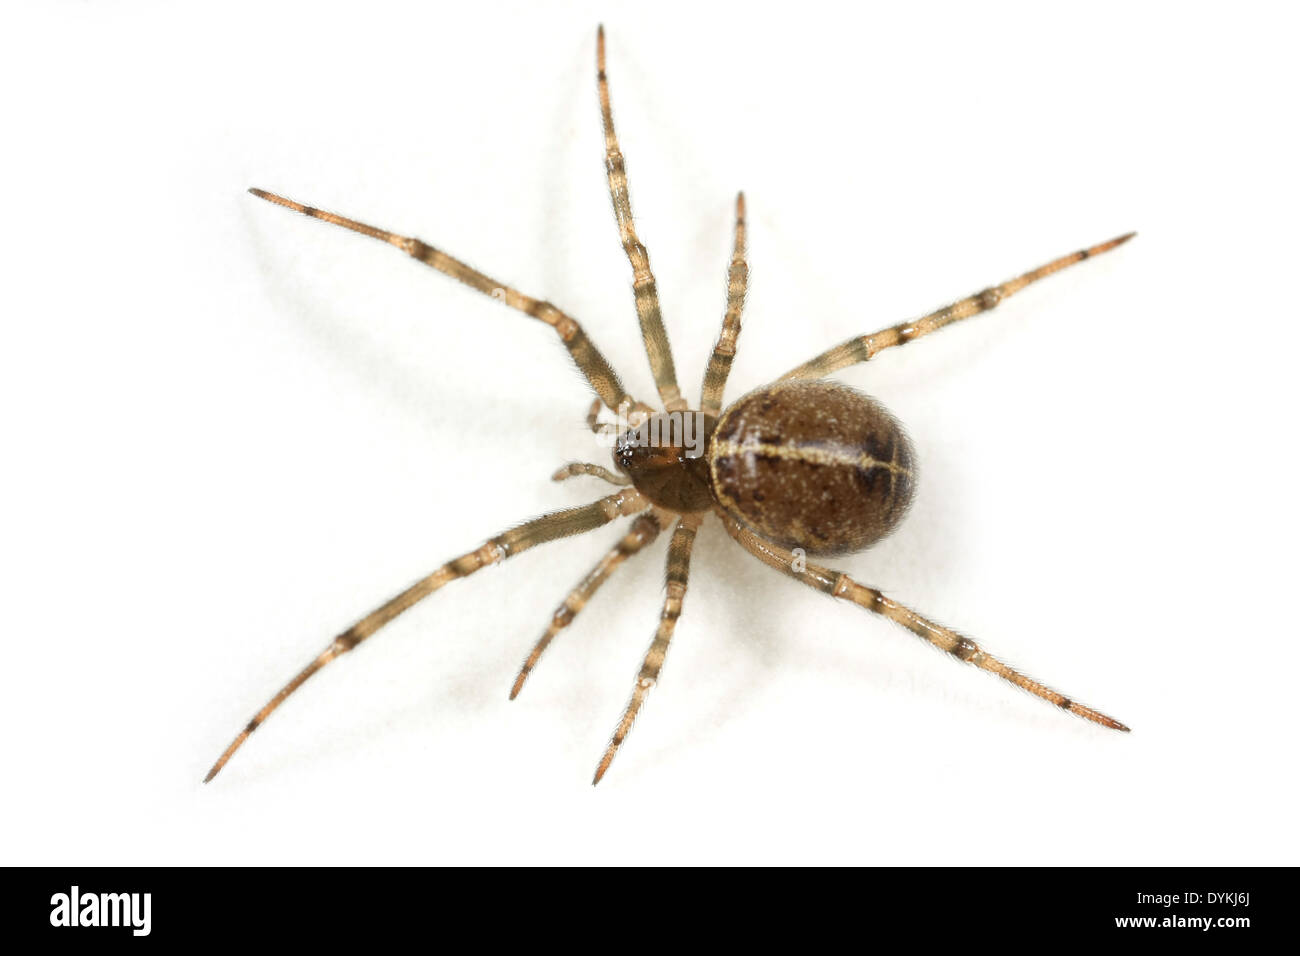 Female Steatoda castanea spider, part of the family Theridiidae - Cobweb weavers. - Stock Image